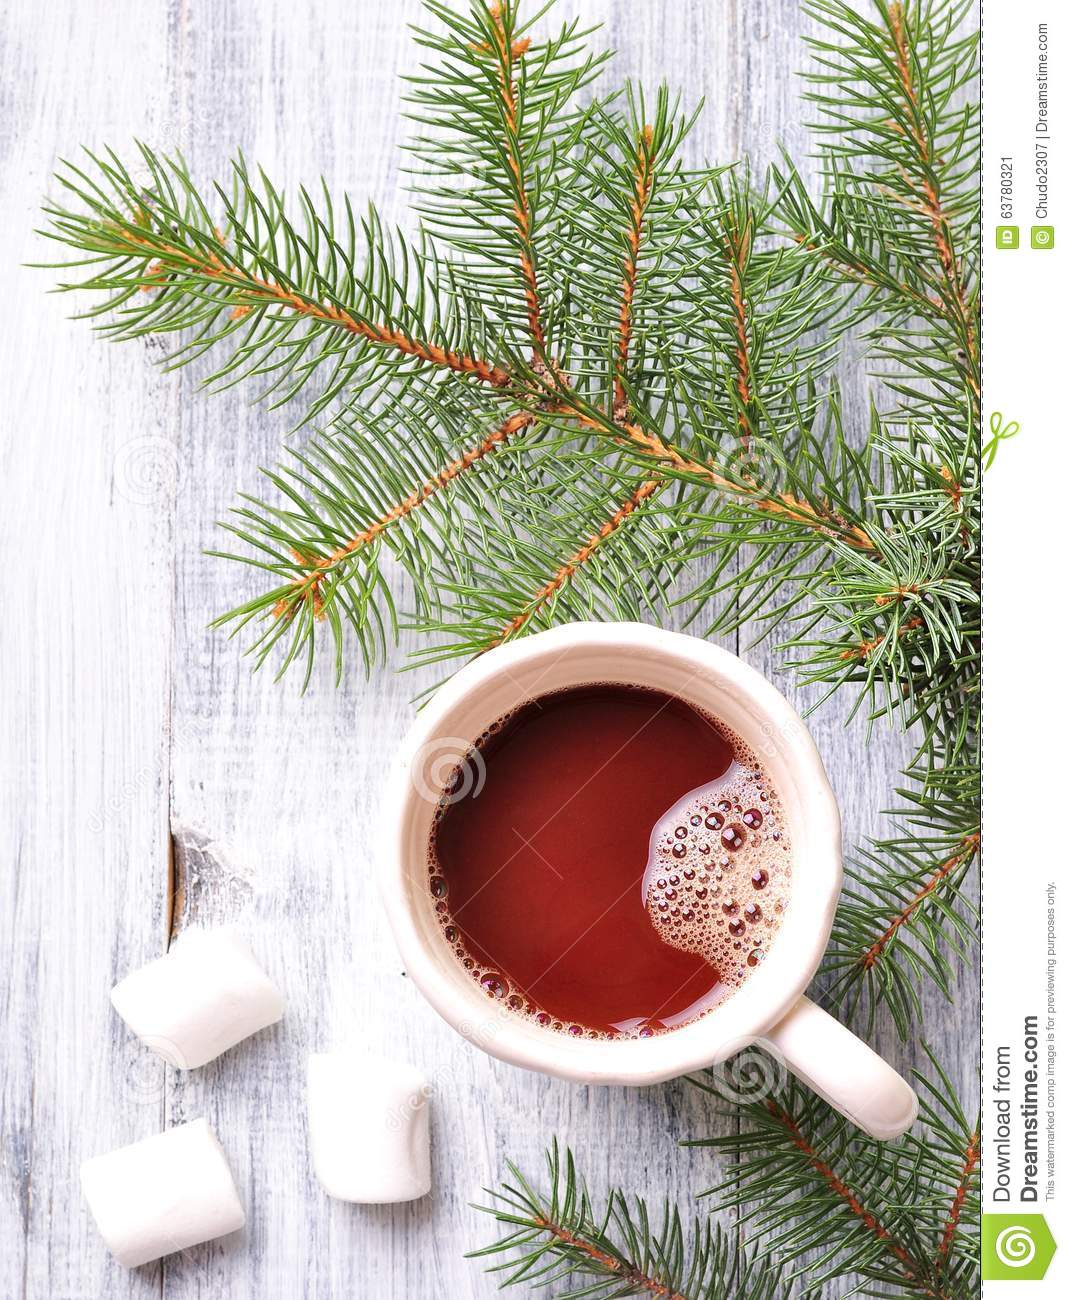 Chocolate or cocoa drink with marshmallows in a Christmas cup on the background of spruce